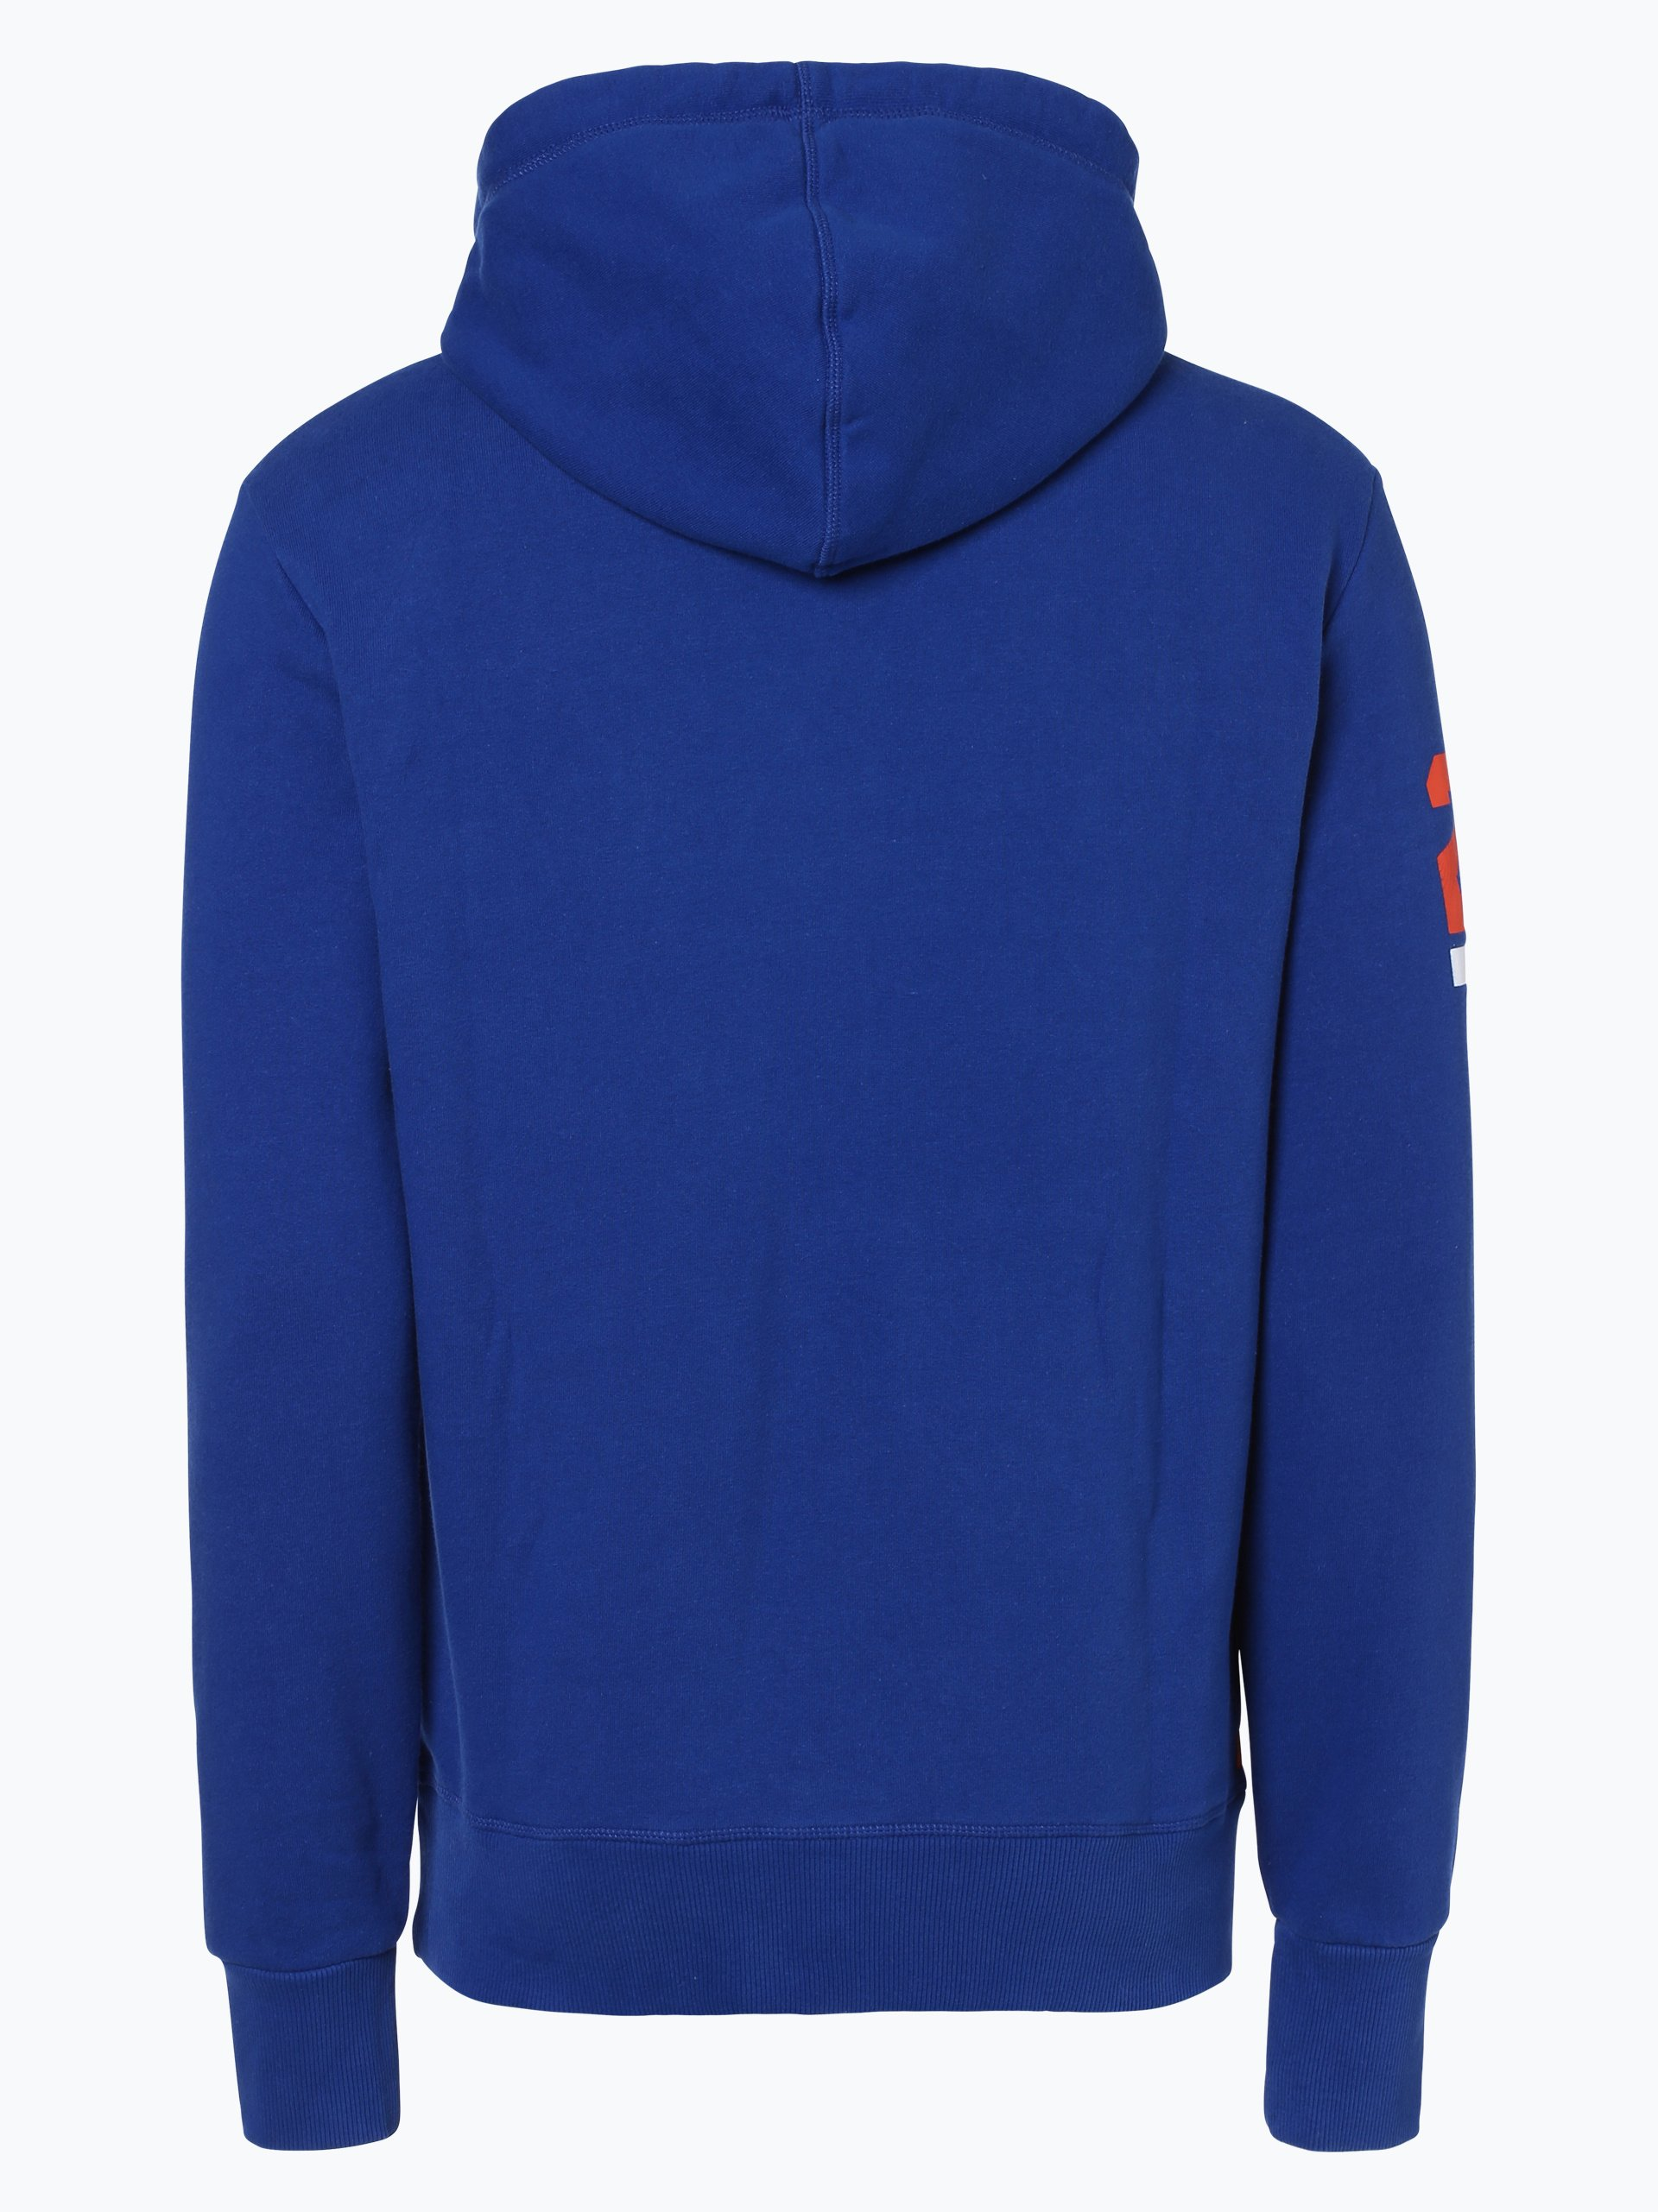 superdry herren sweatshirt royal gemustert online kaufen. Black Bedroom Furniture Sets. Home Design Ideas